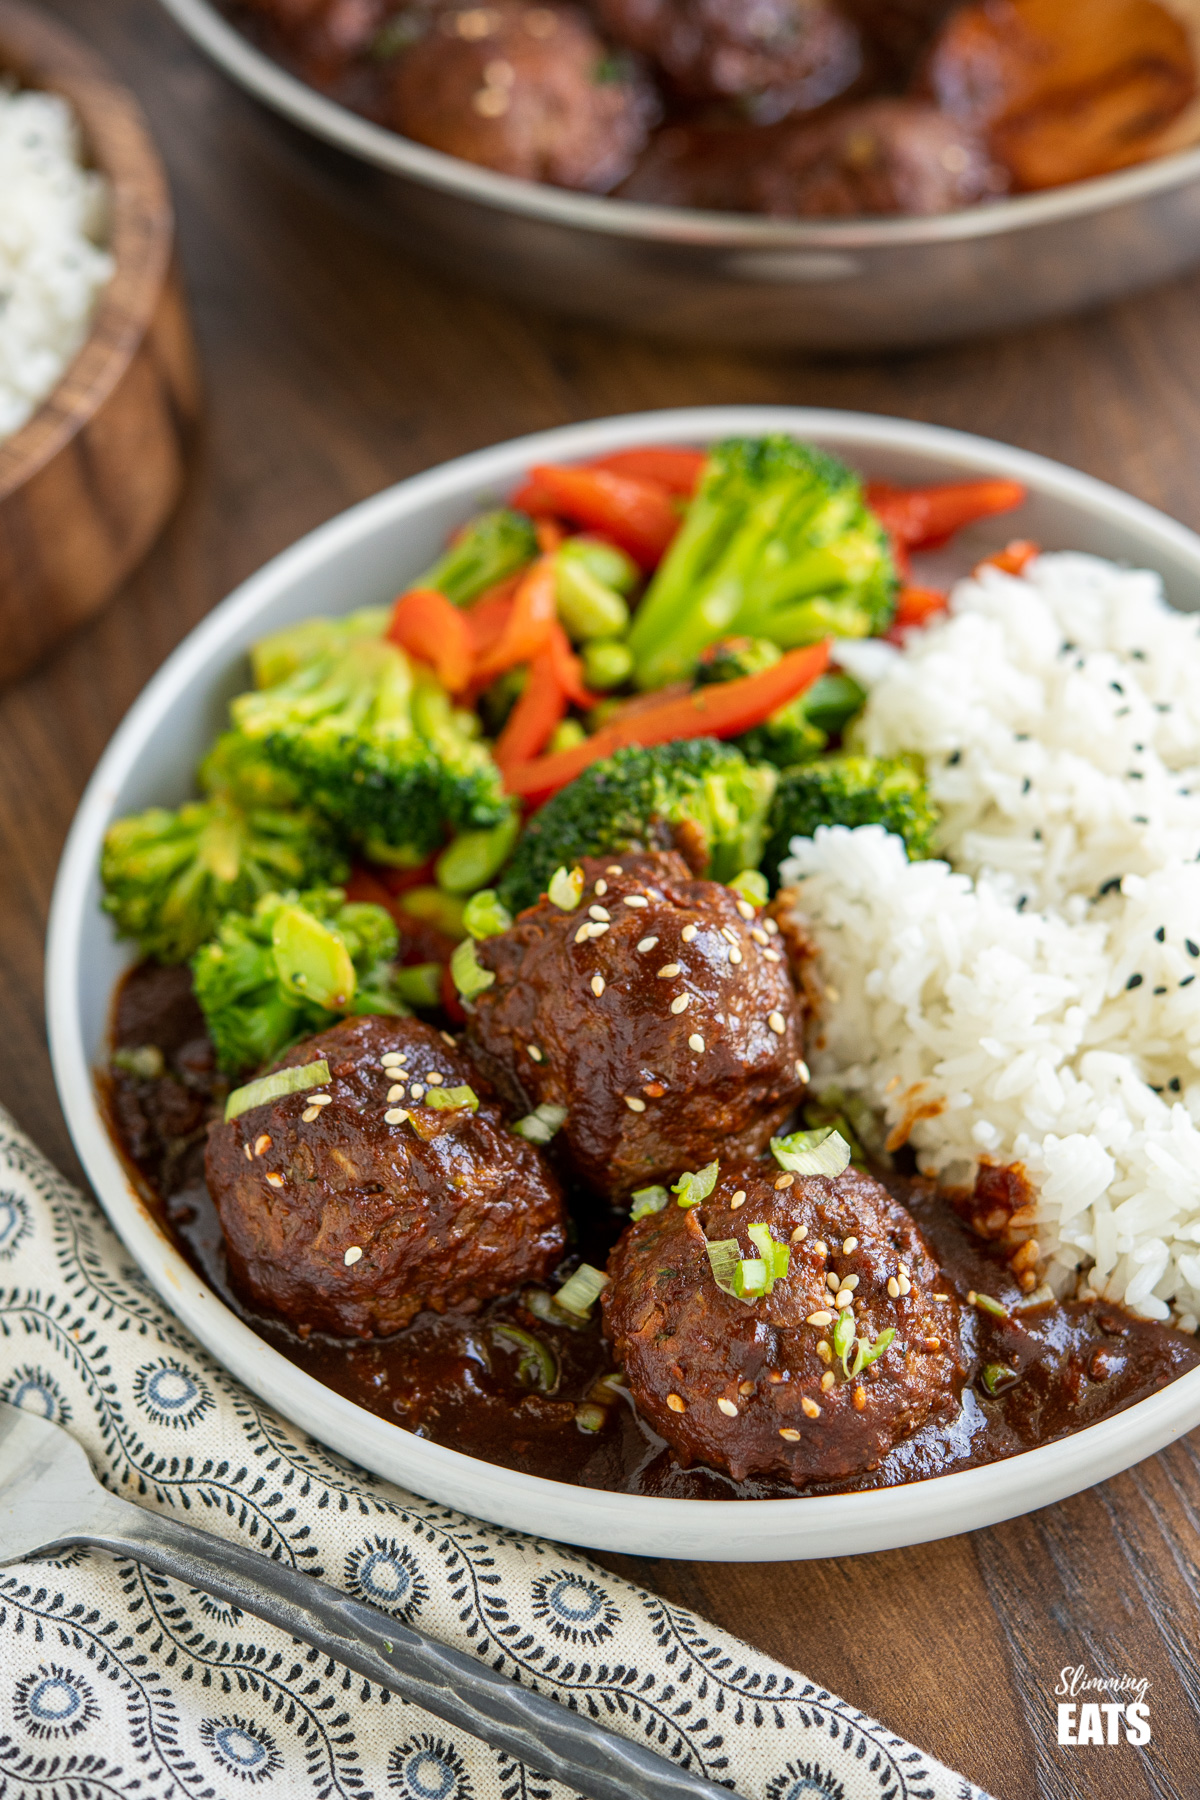 Delicious recipes with hidden veggies: Asian meatballs at Slimming Eats